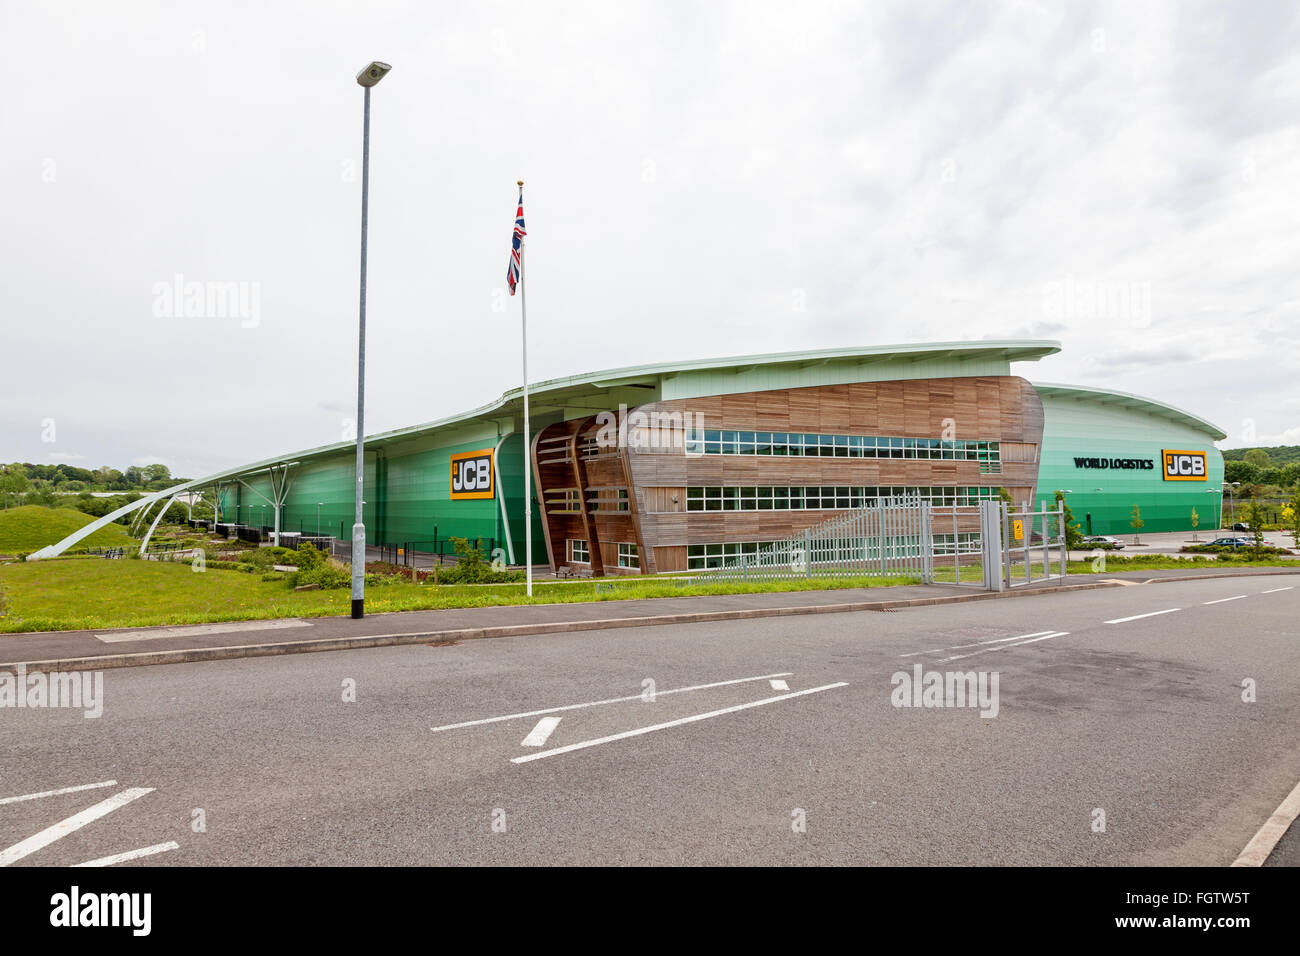 The JCB World Logistics distribution centre Blue Planet building at Chatterley Valley Stoke on Trent England UK - Stock Image